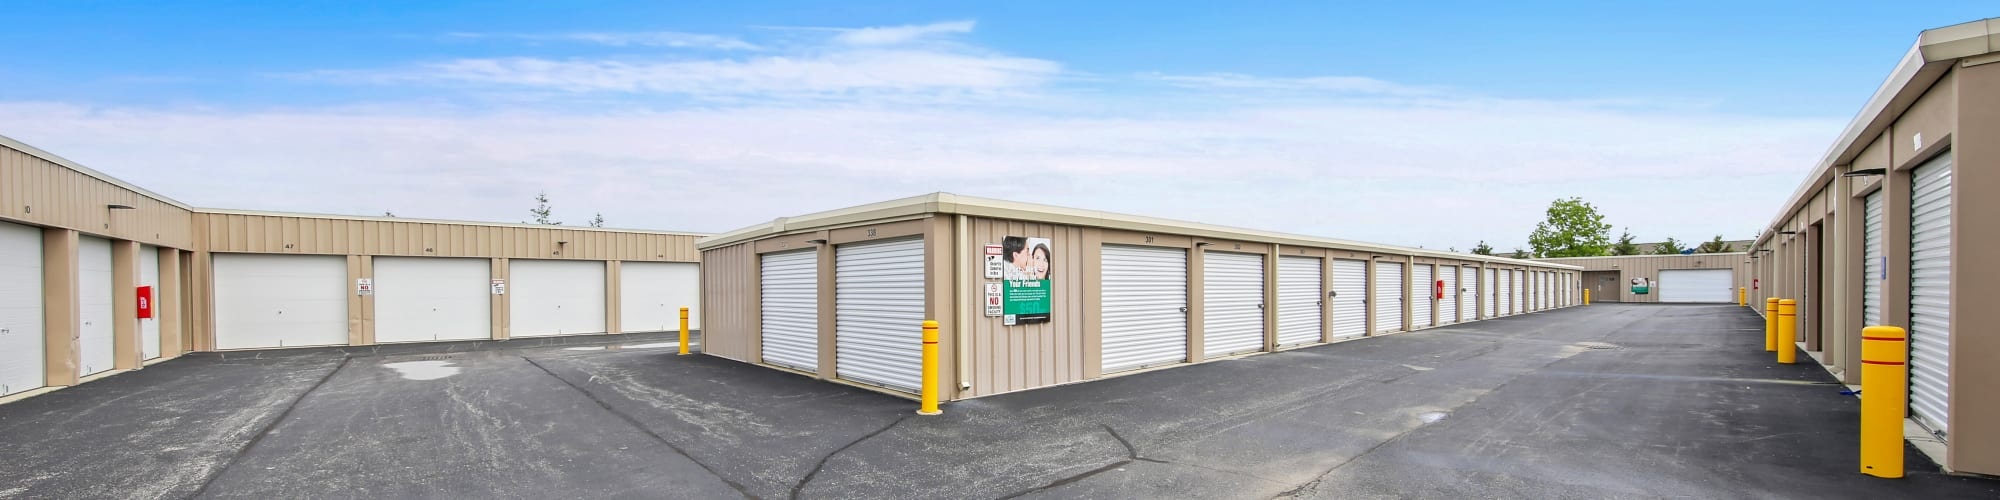 Events and Auctions at Global Self Storage in McCordsville, Indiana